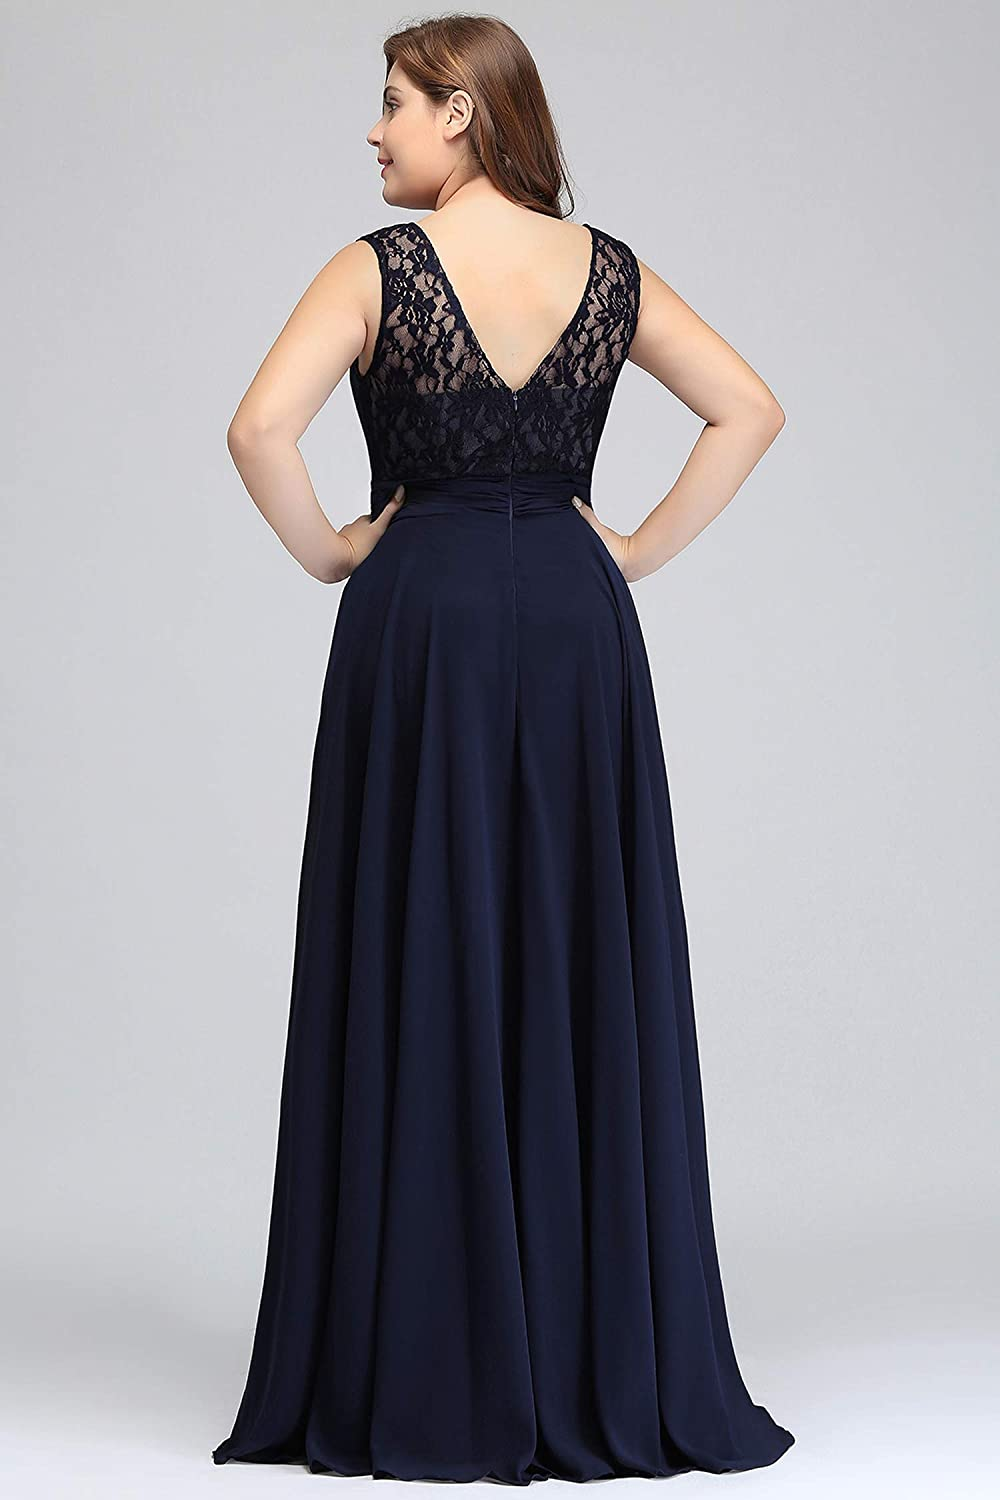 Evening Dress Sleeveless Lace Chiffon Evening Dresses Long Party Dresses Formal Gown,Burgundy,12